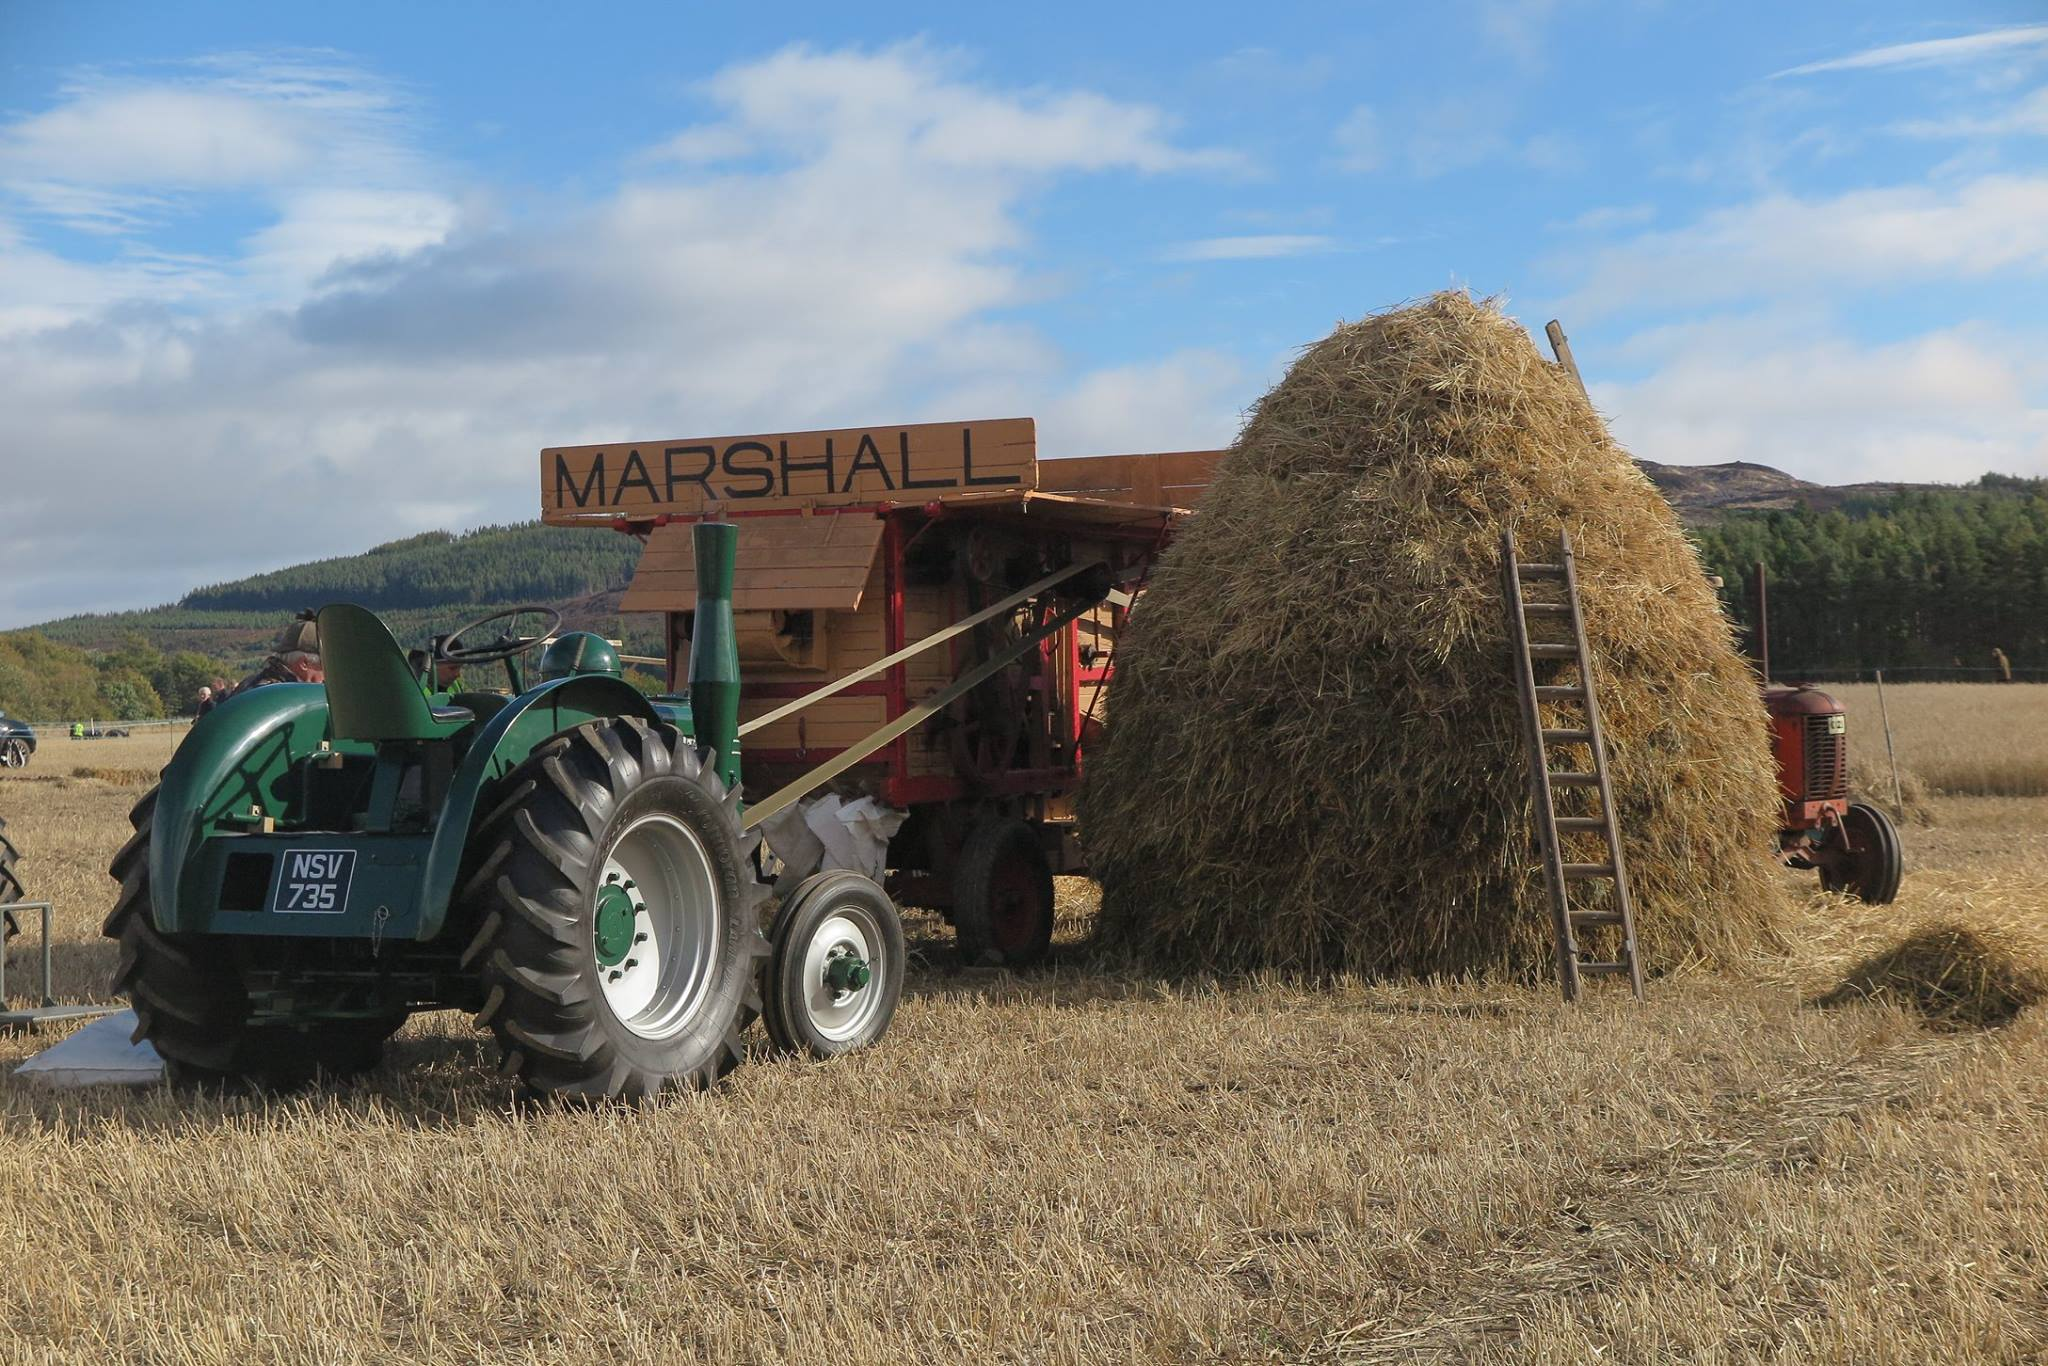 Scottish Agricultural Implement Makers Celebrating The